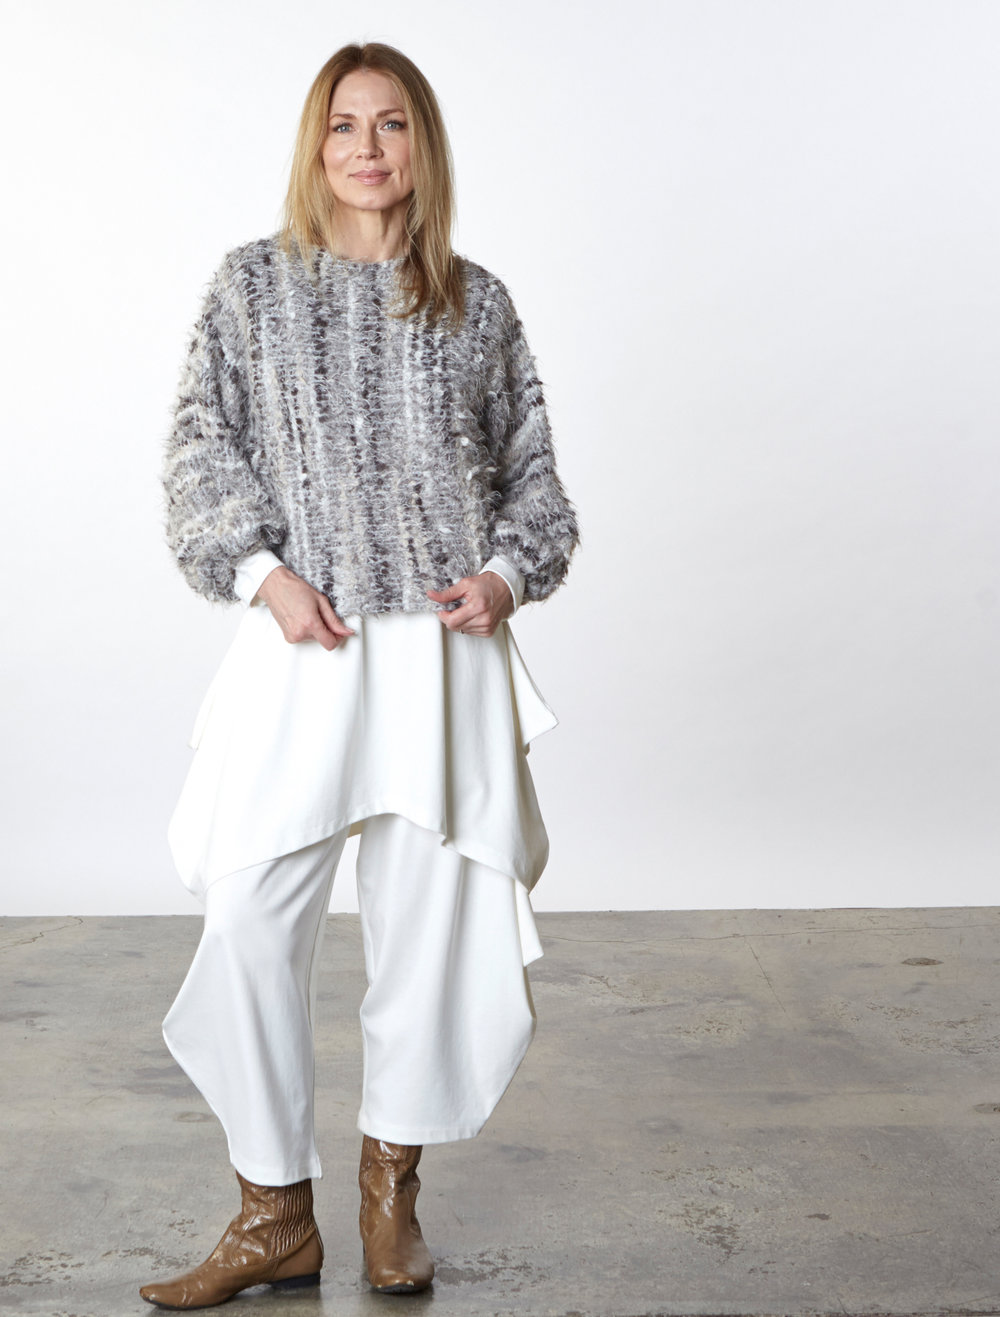 Anna Shirt in Grey Italian Boucle, Chase Tunic, Hamish Pant in Cream Modal Ponti